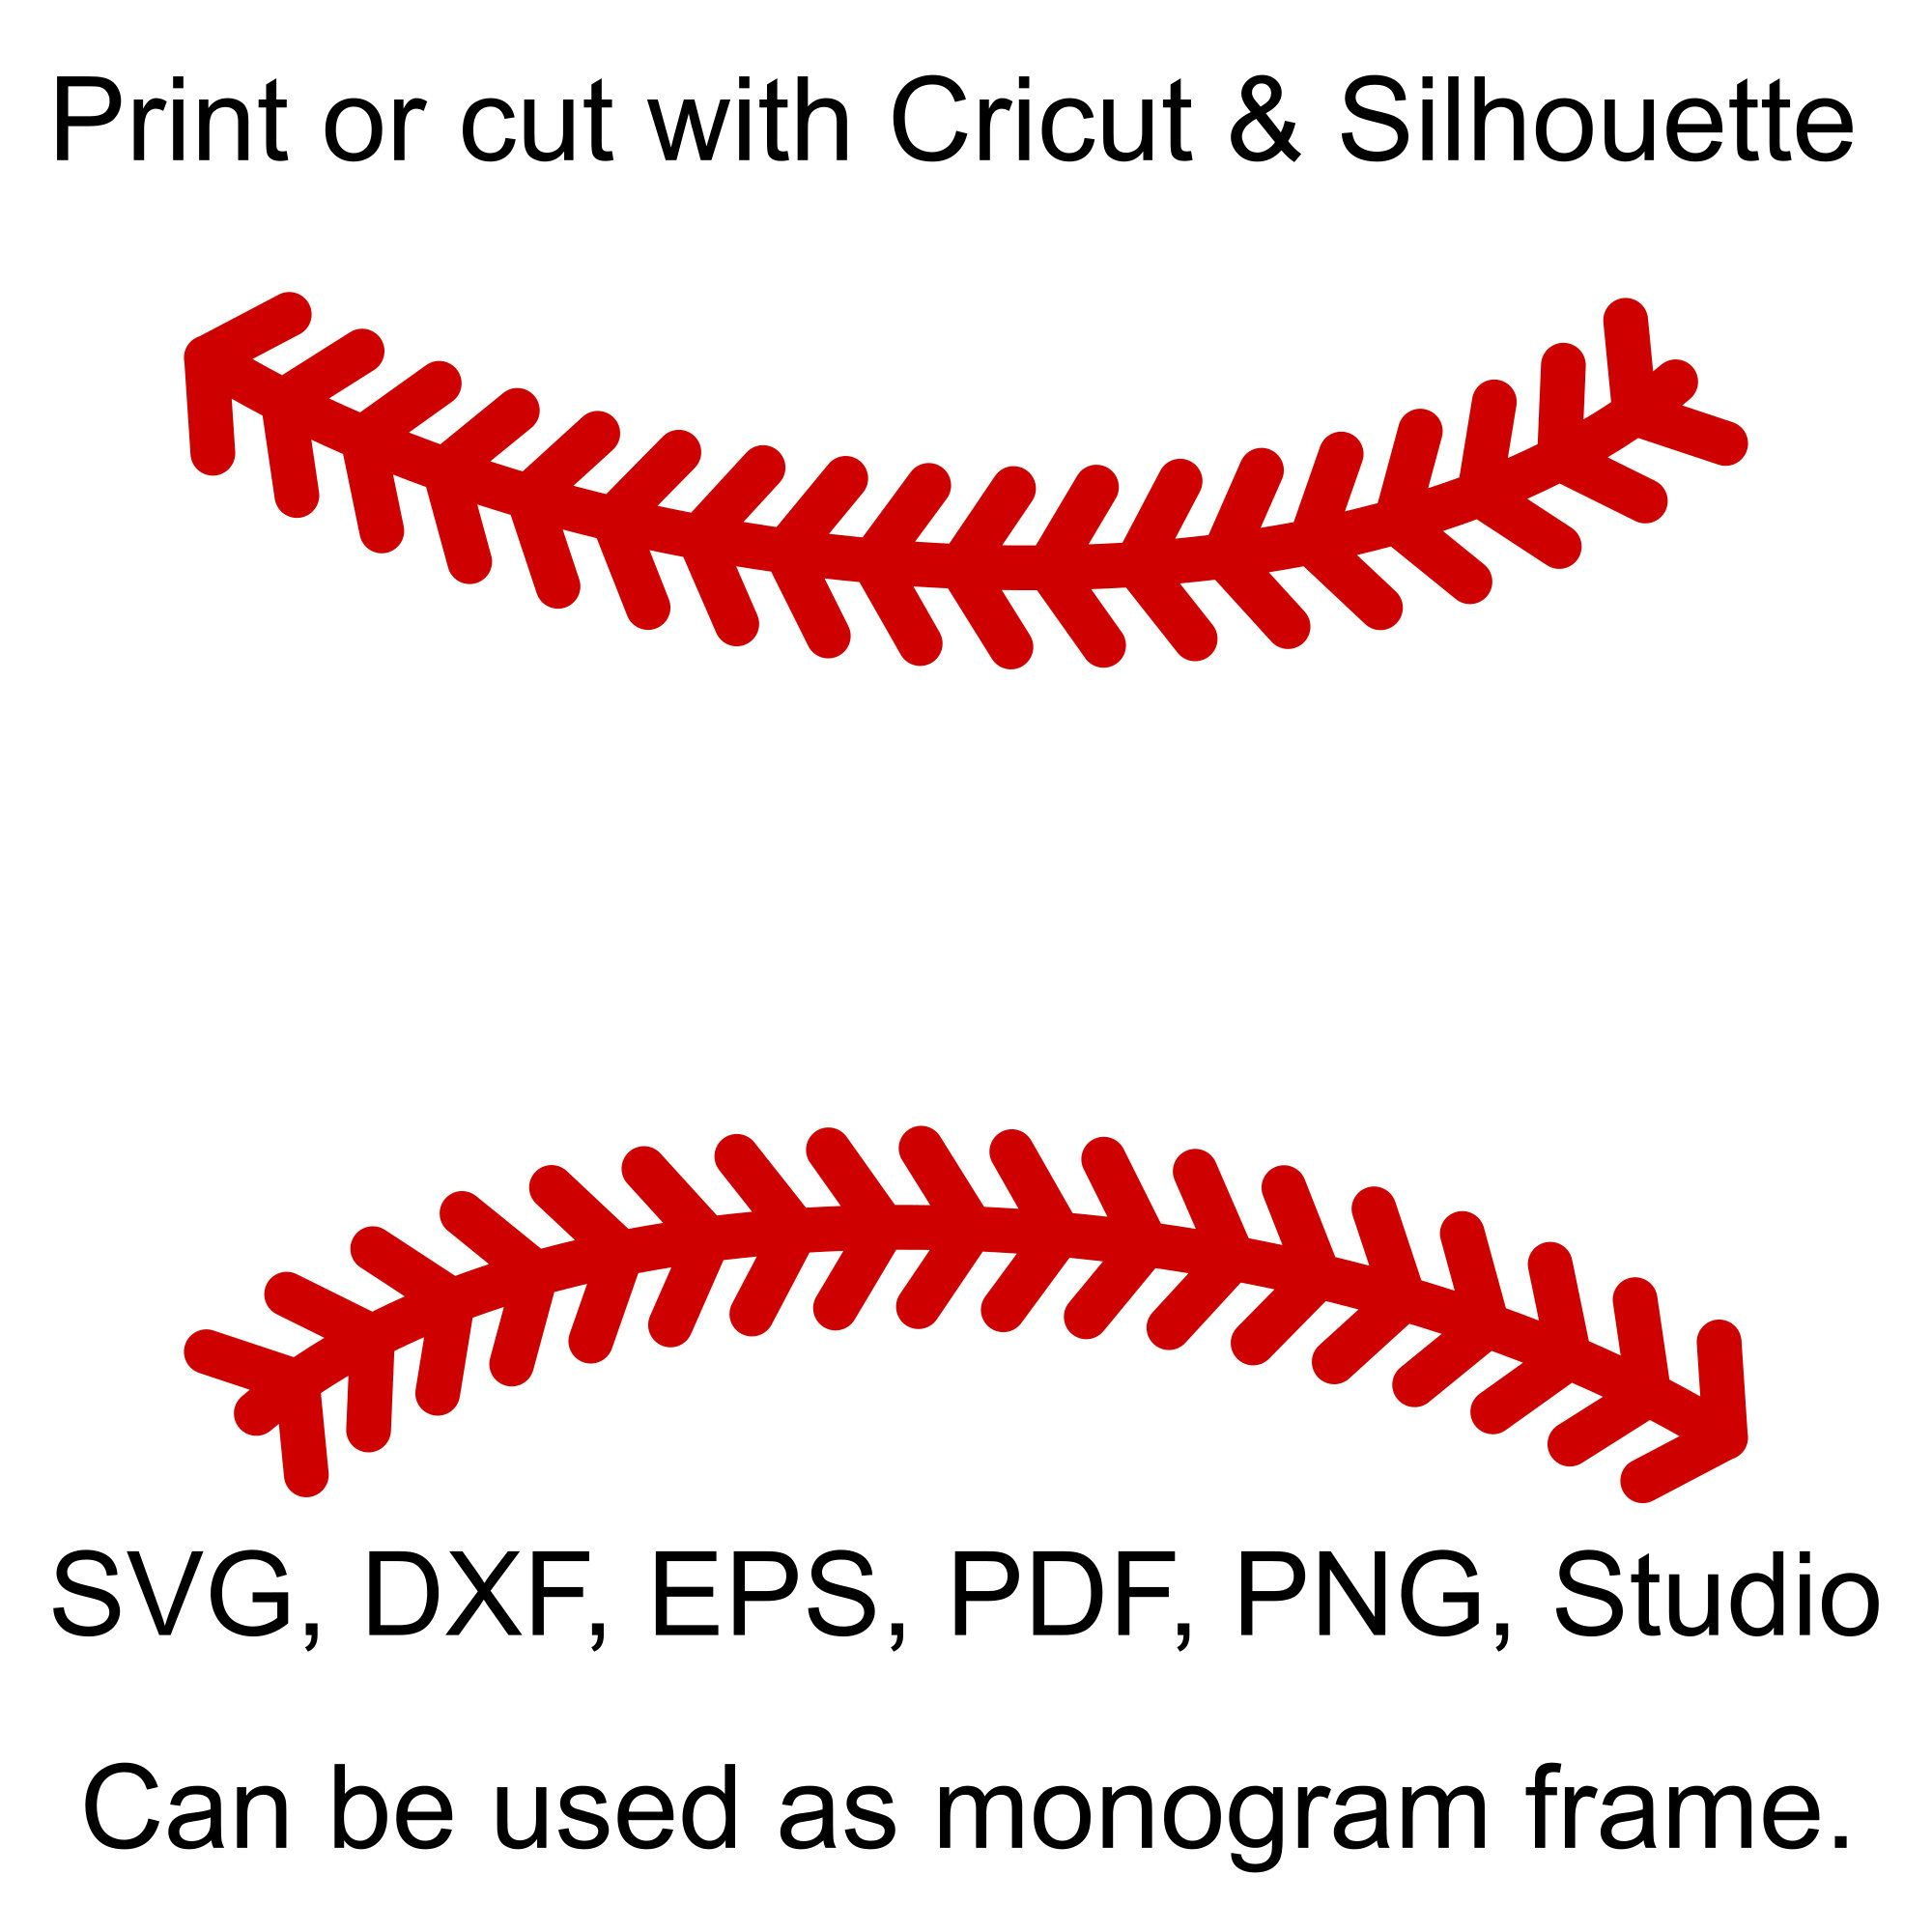 Baseball Stitches Svg Files Baseball Laces Svg File For Etsy Baseball Stitch Monogram Frame Cricut